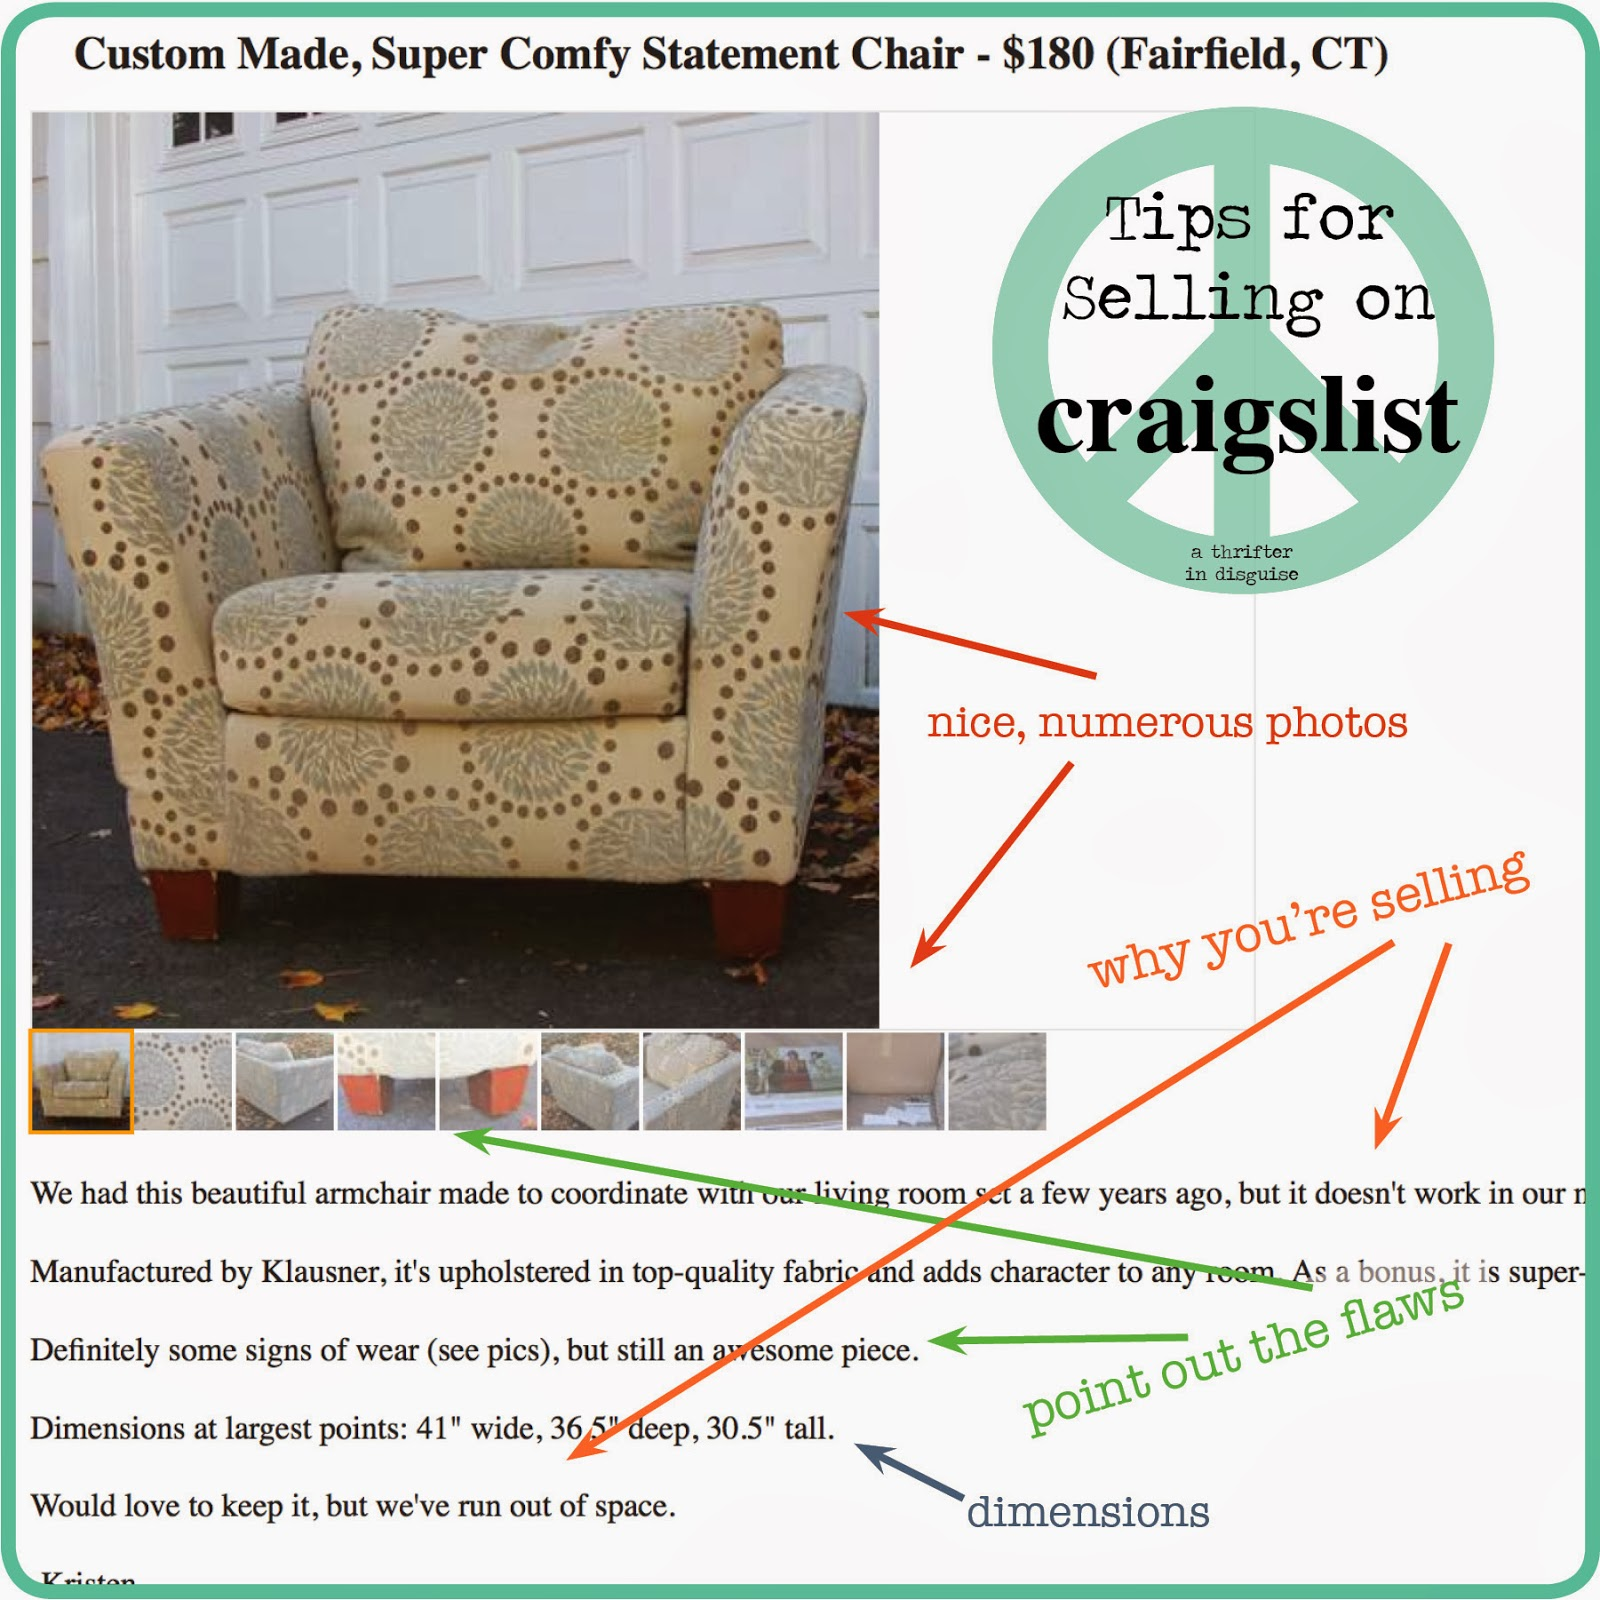 A Thrifter In Disguise Tips For Selling On Craigslist